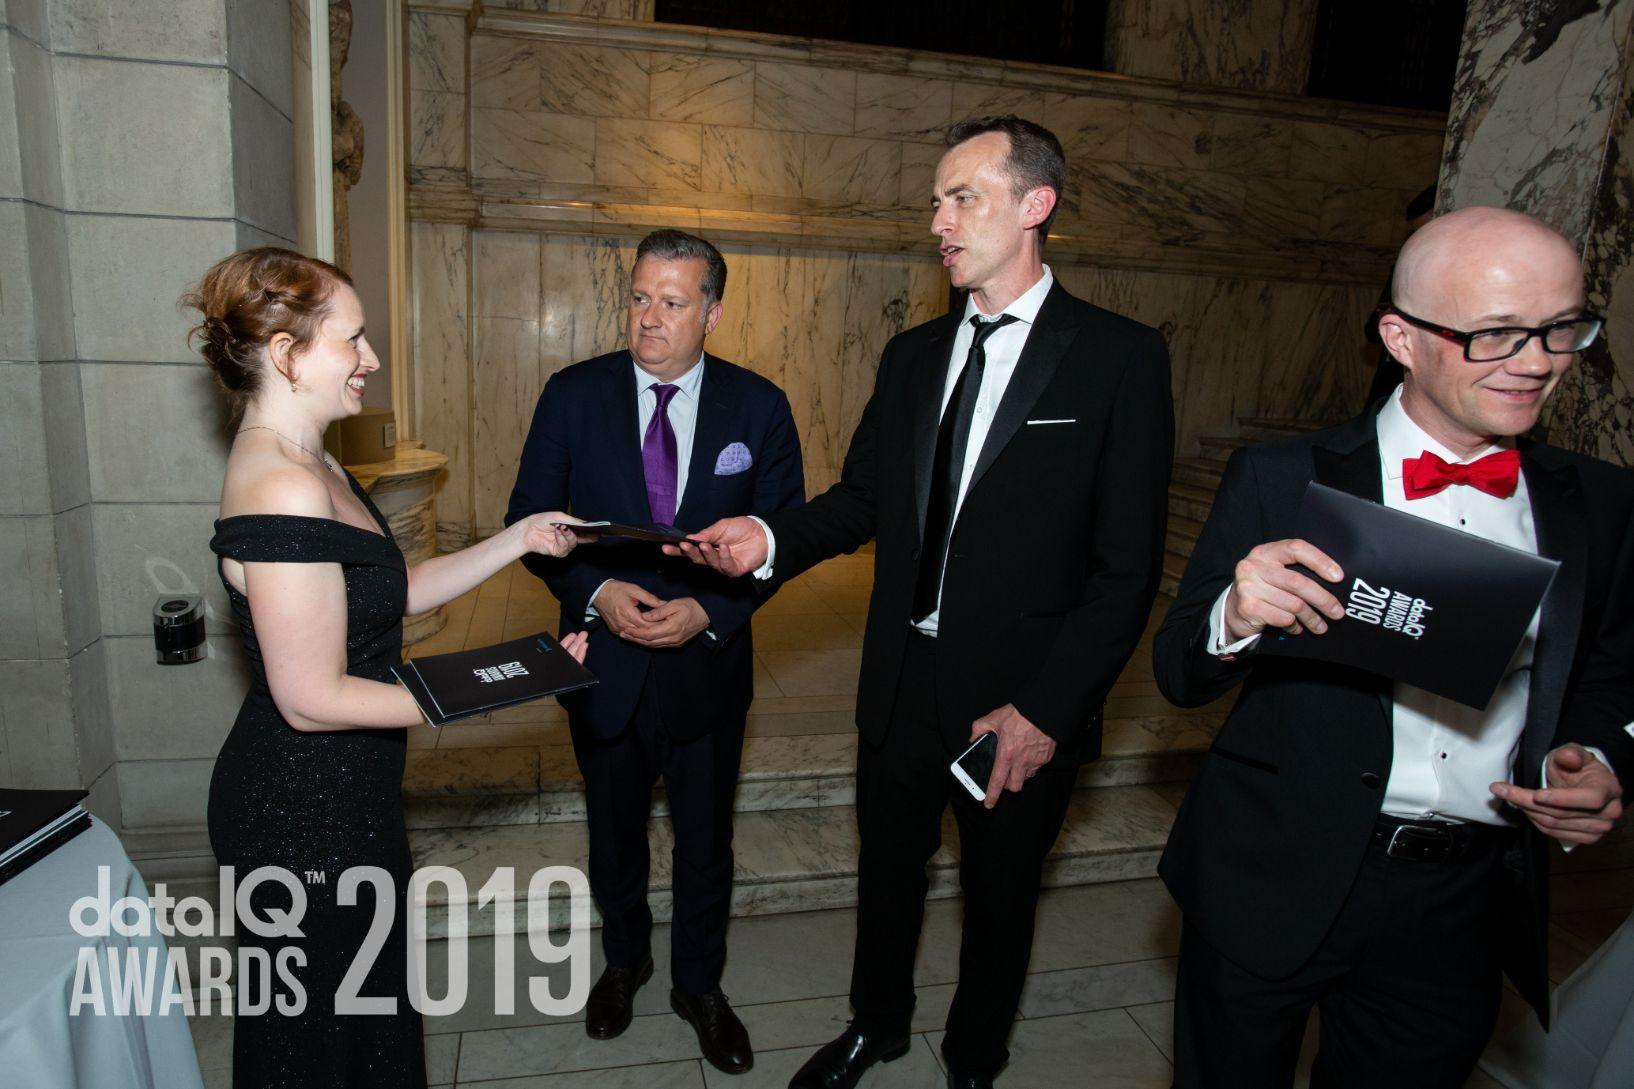 Awards 2019 Image 135